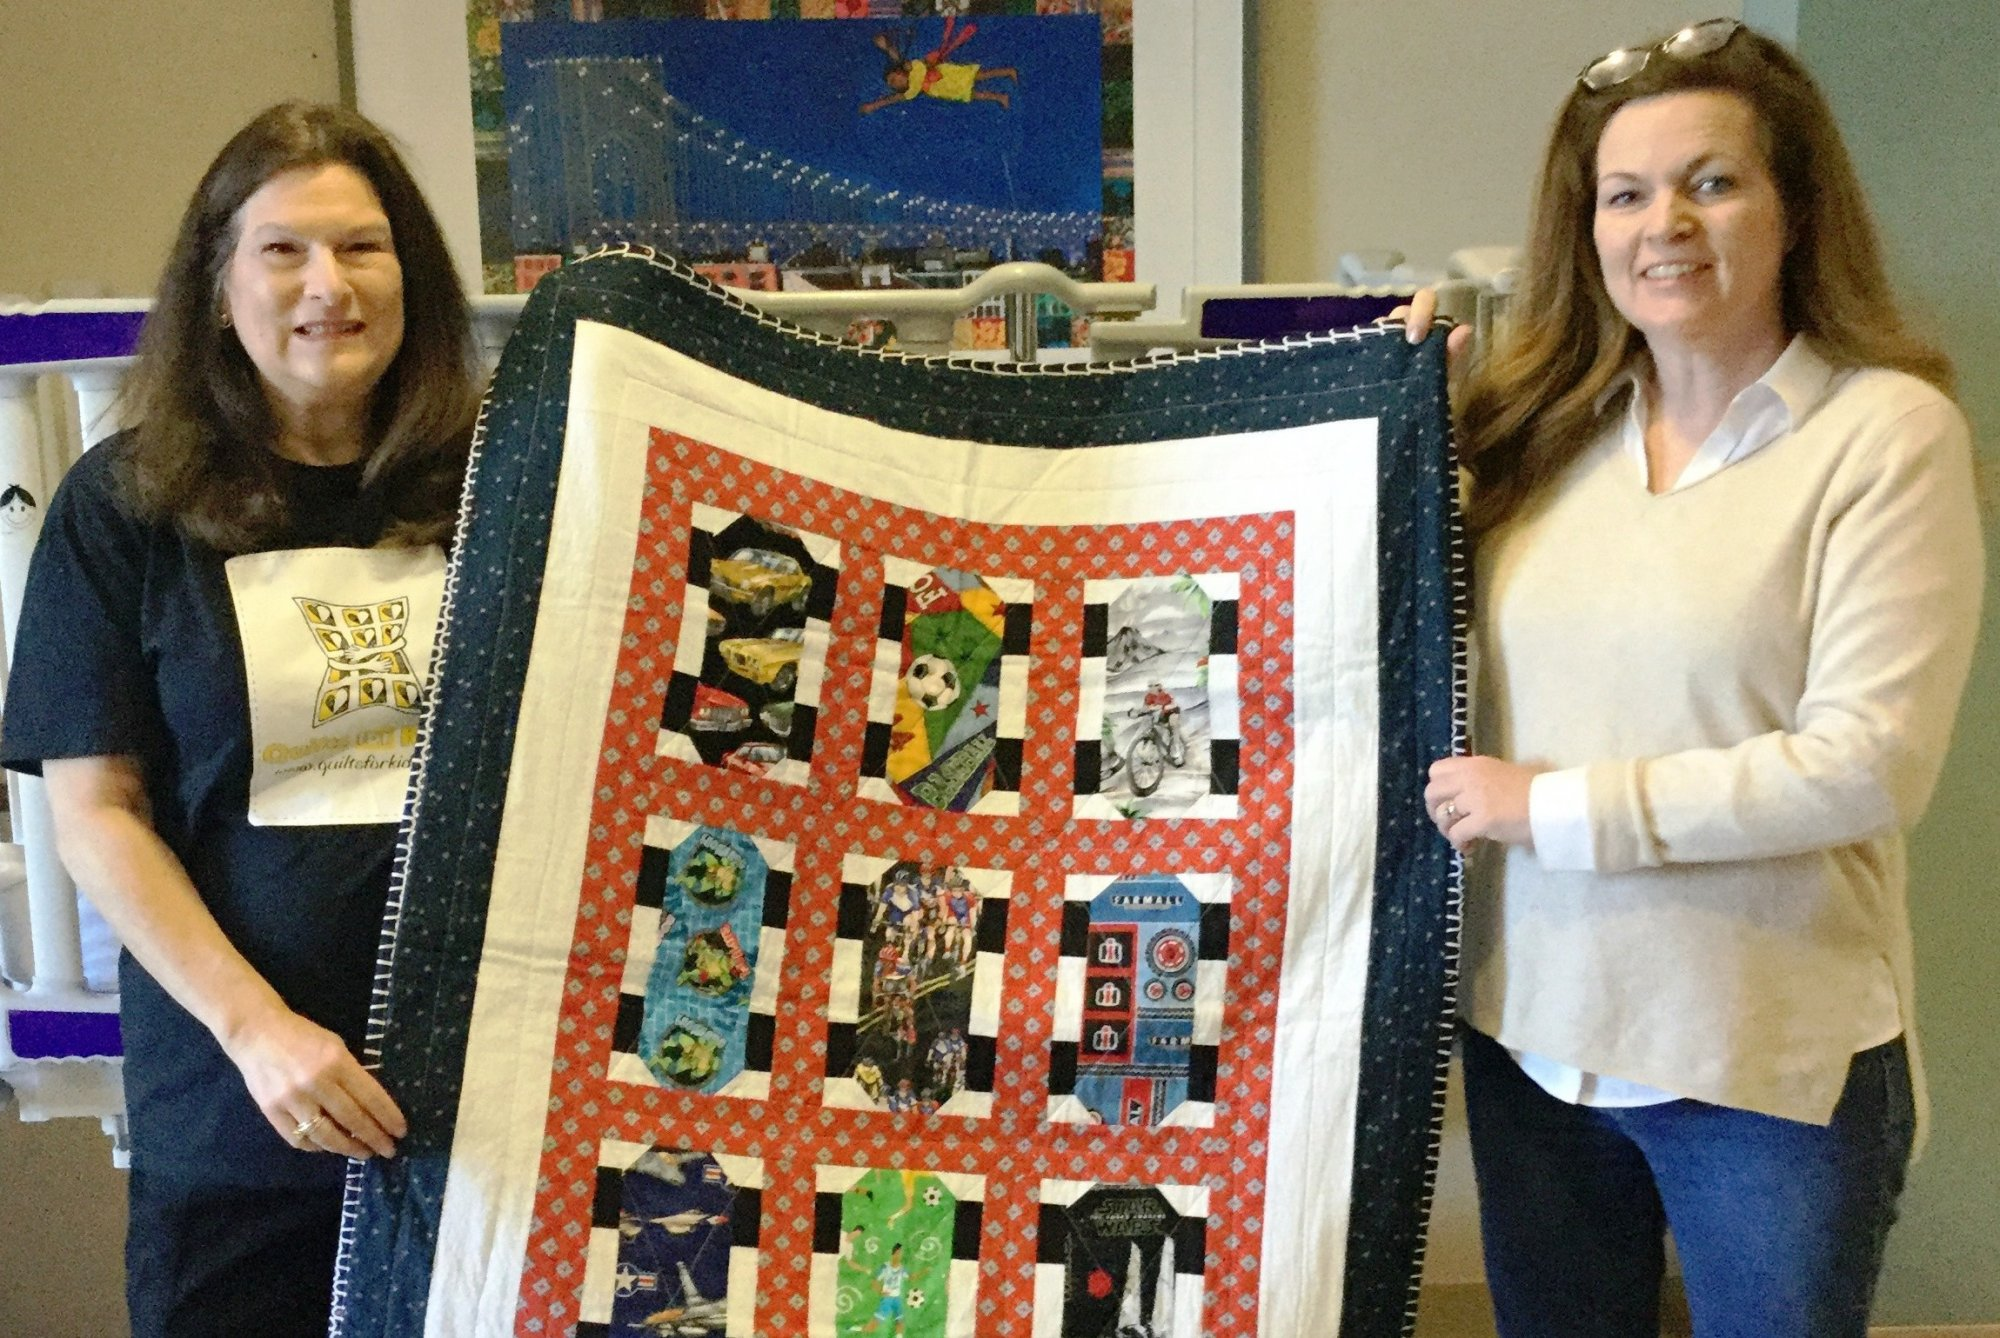 Marie and a volunteer stand, holding a quilt